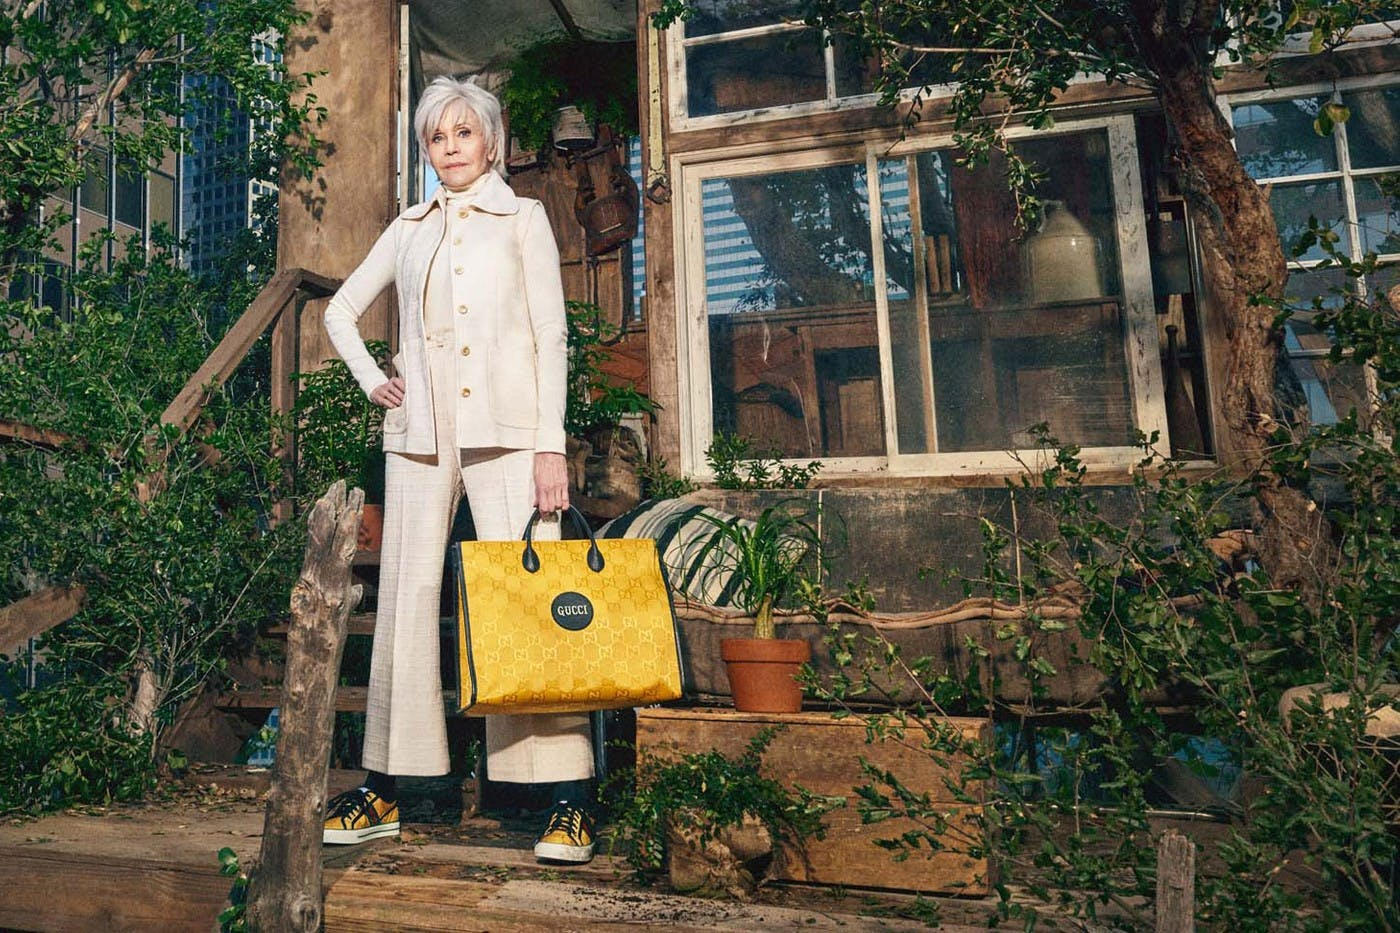 GUCCI'S NEW OFF THE GRID COLLECTION: JANE FONDA, KING PRINCESS AND DAVID DE ROTHSCHILD